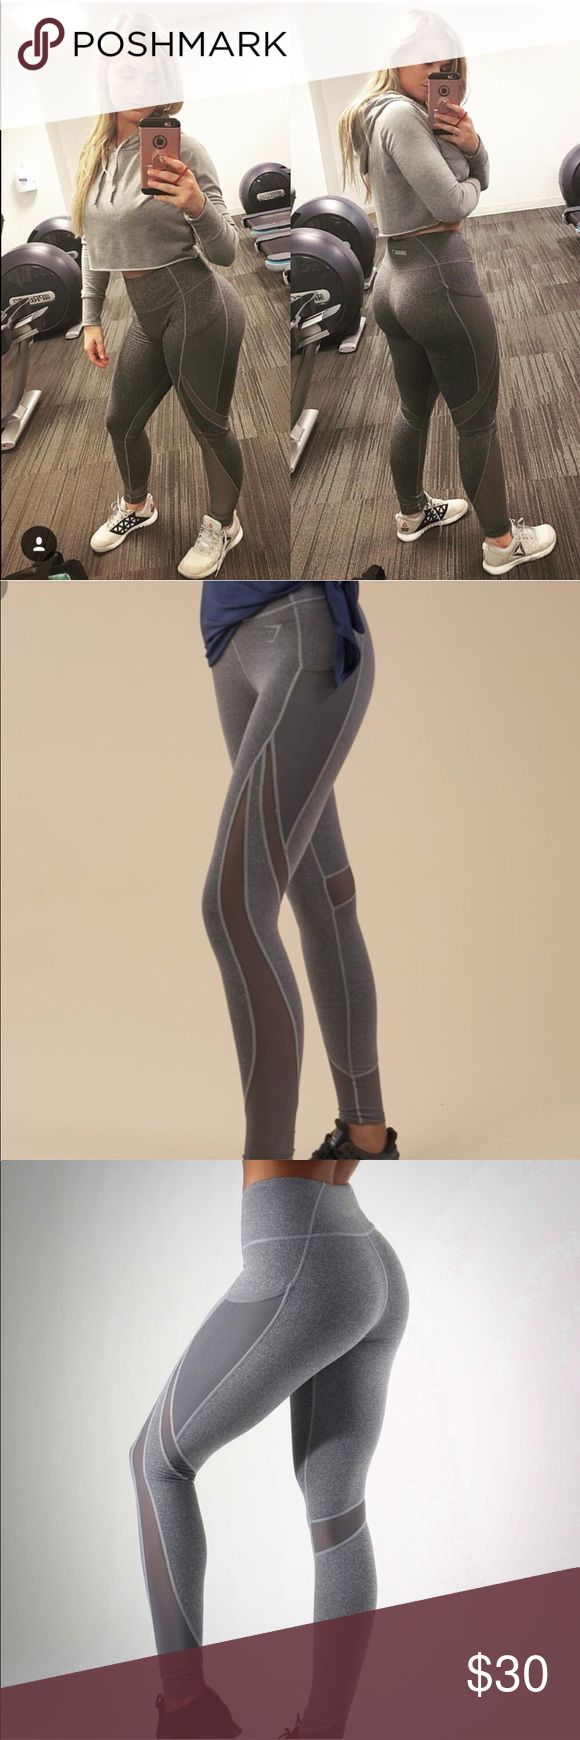 Gymshark Sleek Sculpture Leggings Charcoal LARGE Brand new without tags!! Send me an offer!! I will sell them lower than the current Gymshark Blackout sale price! Plus way faster shipping! Gymshark Pants Leggings